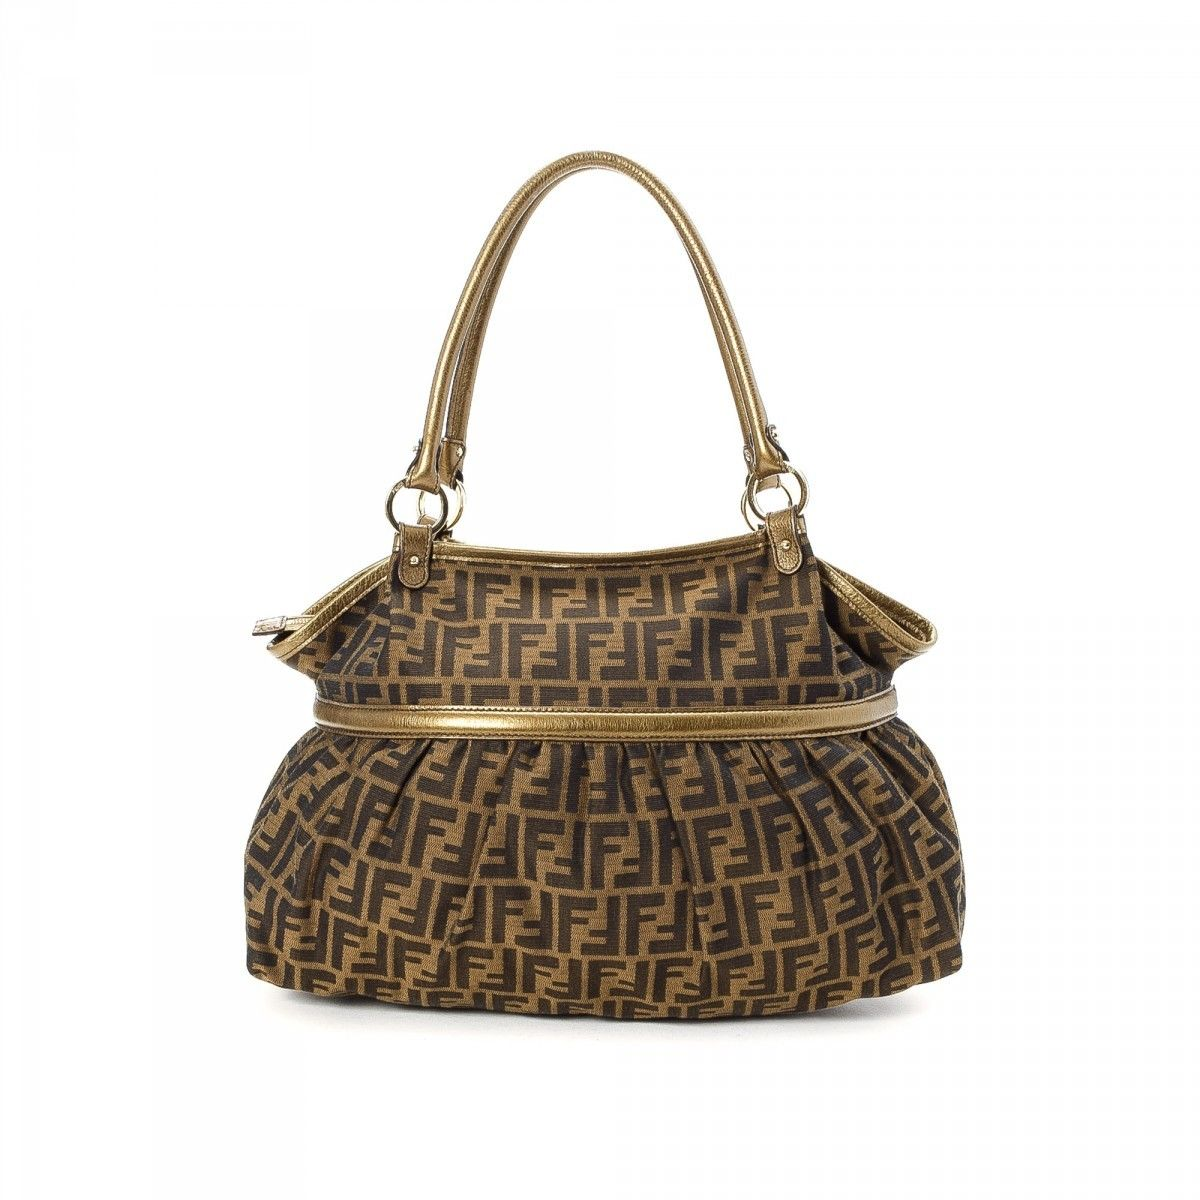 785af99e689 Fendi Chef Bag. The authenticity of this vintage Fendi Chef Bag shoulder bag  is guaranteed by LXRandCo.